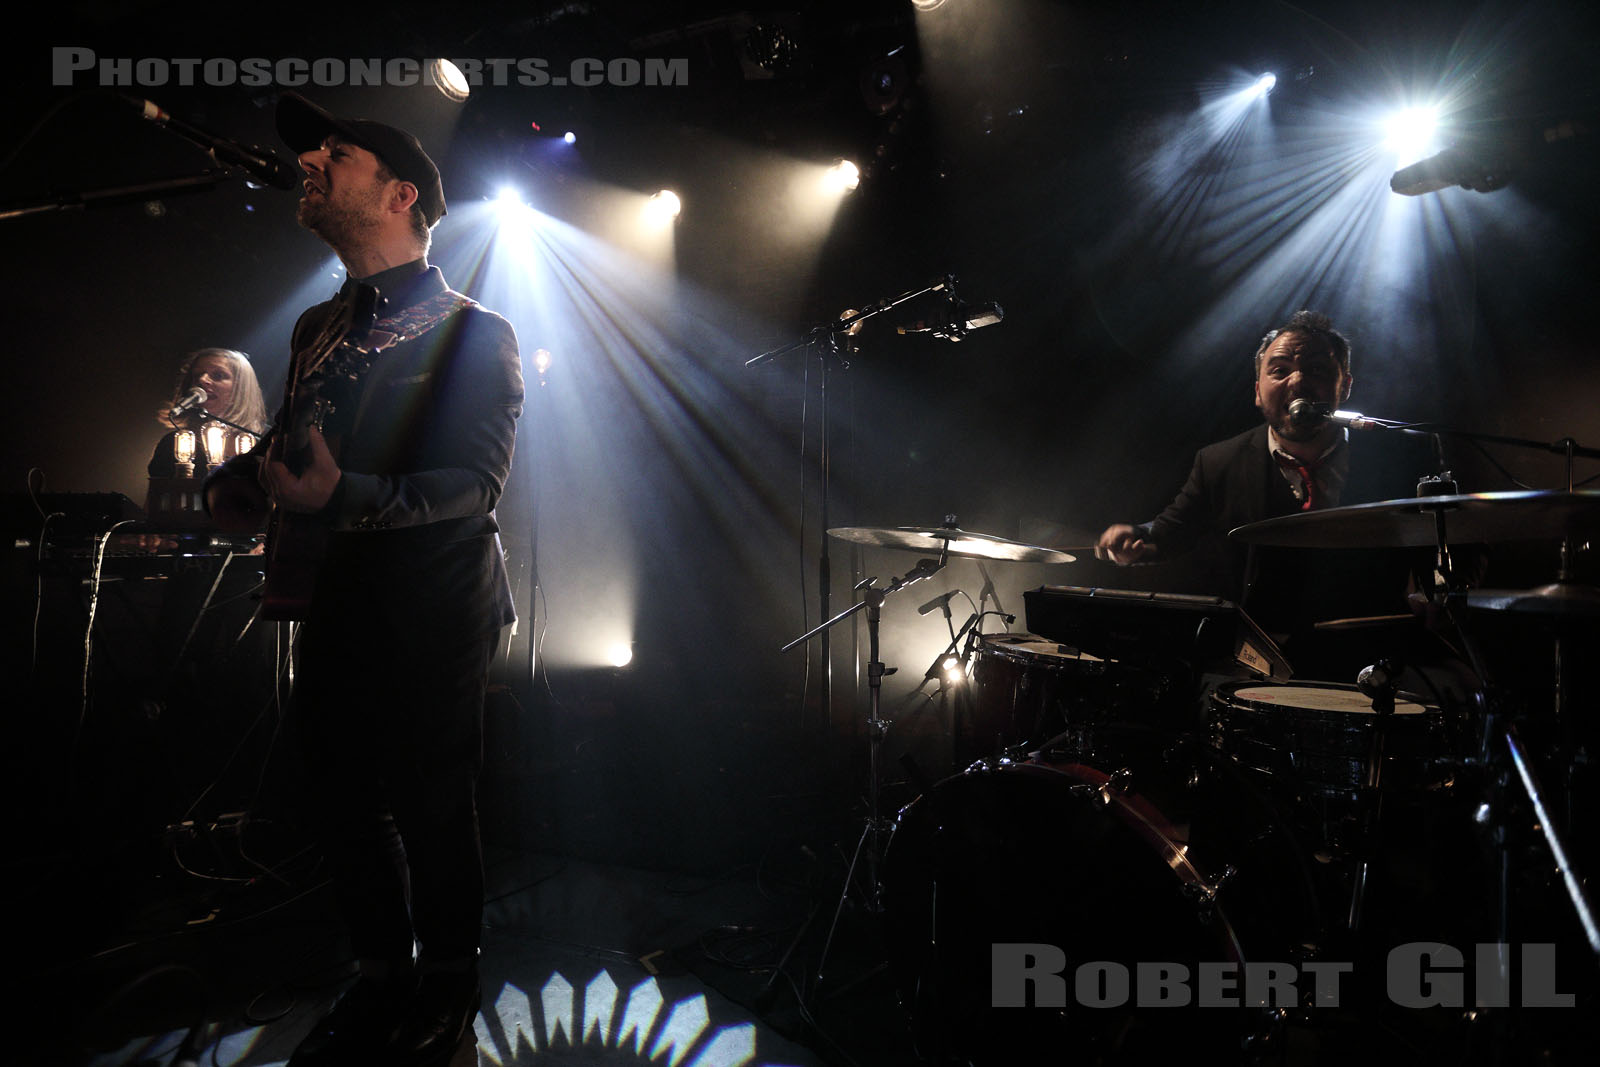 KING BISCUIT - 2020-02-16 - PARIS - La Maroquinerie